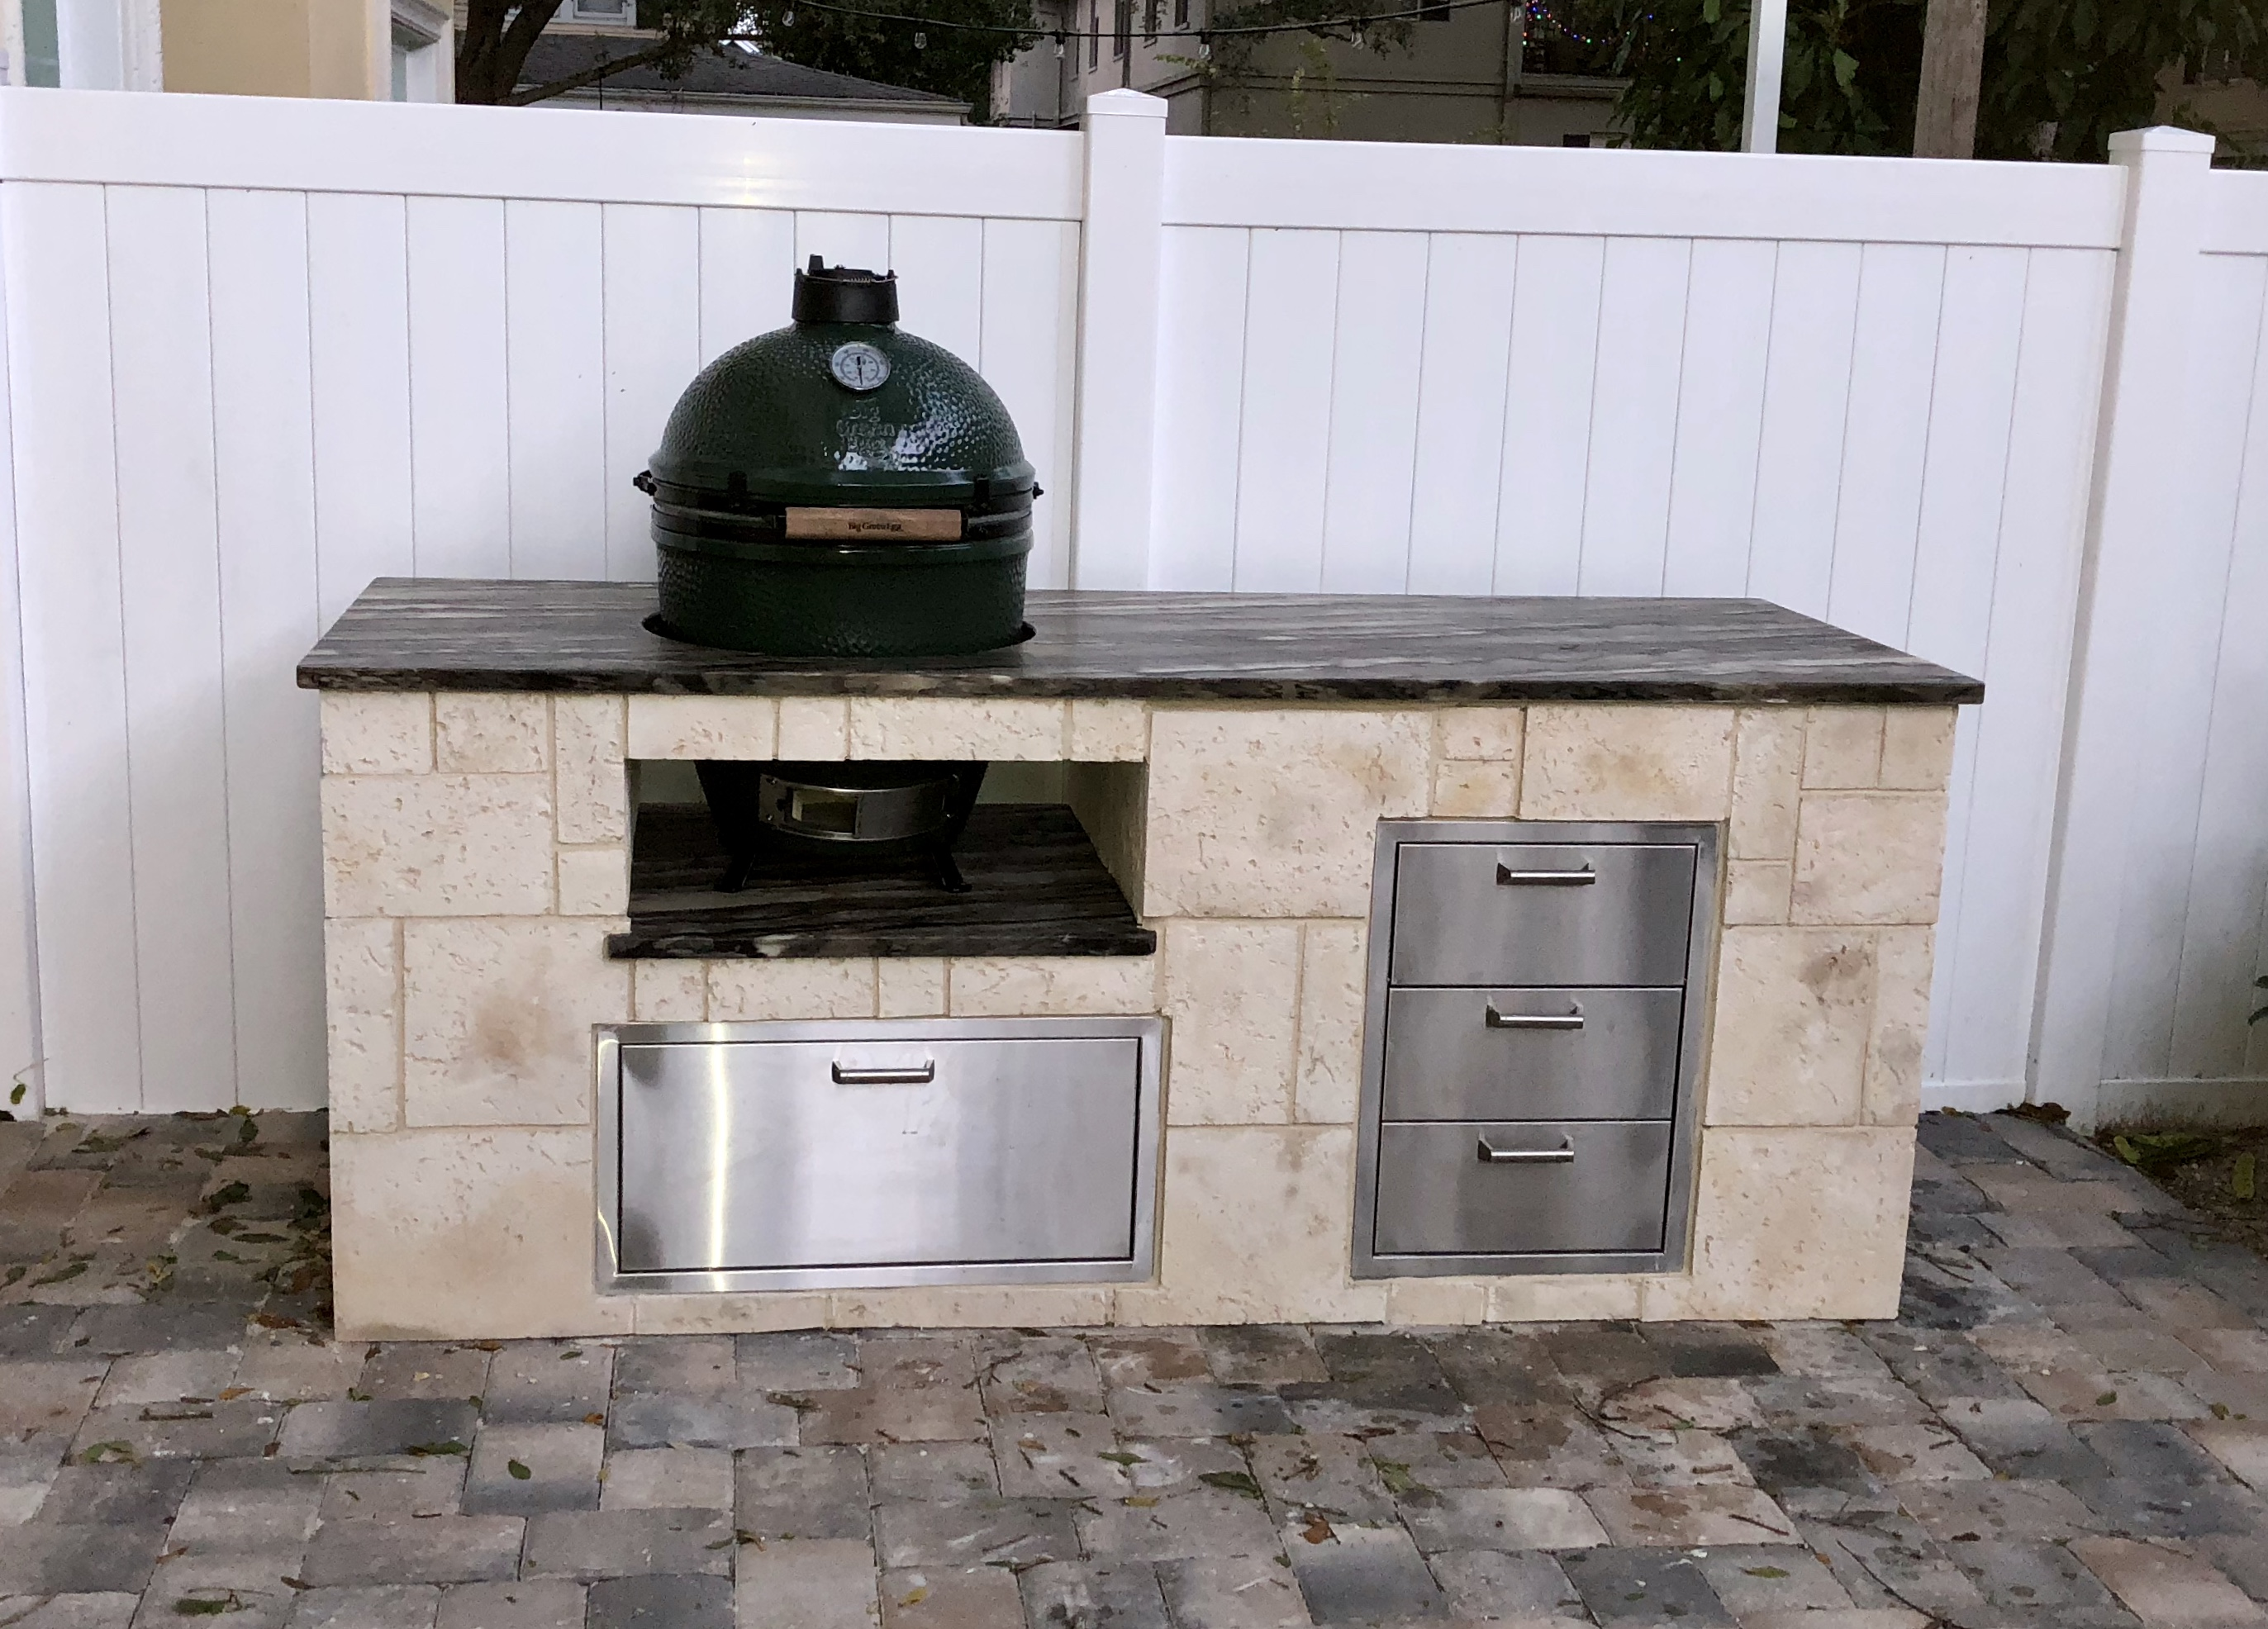 Big Green Egg…Yay or Nay for Your Custom Outdoor Kitchen?